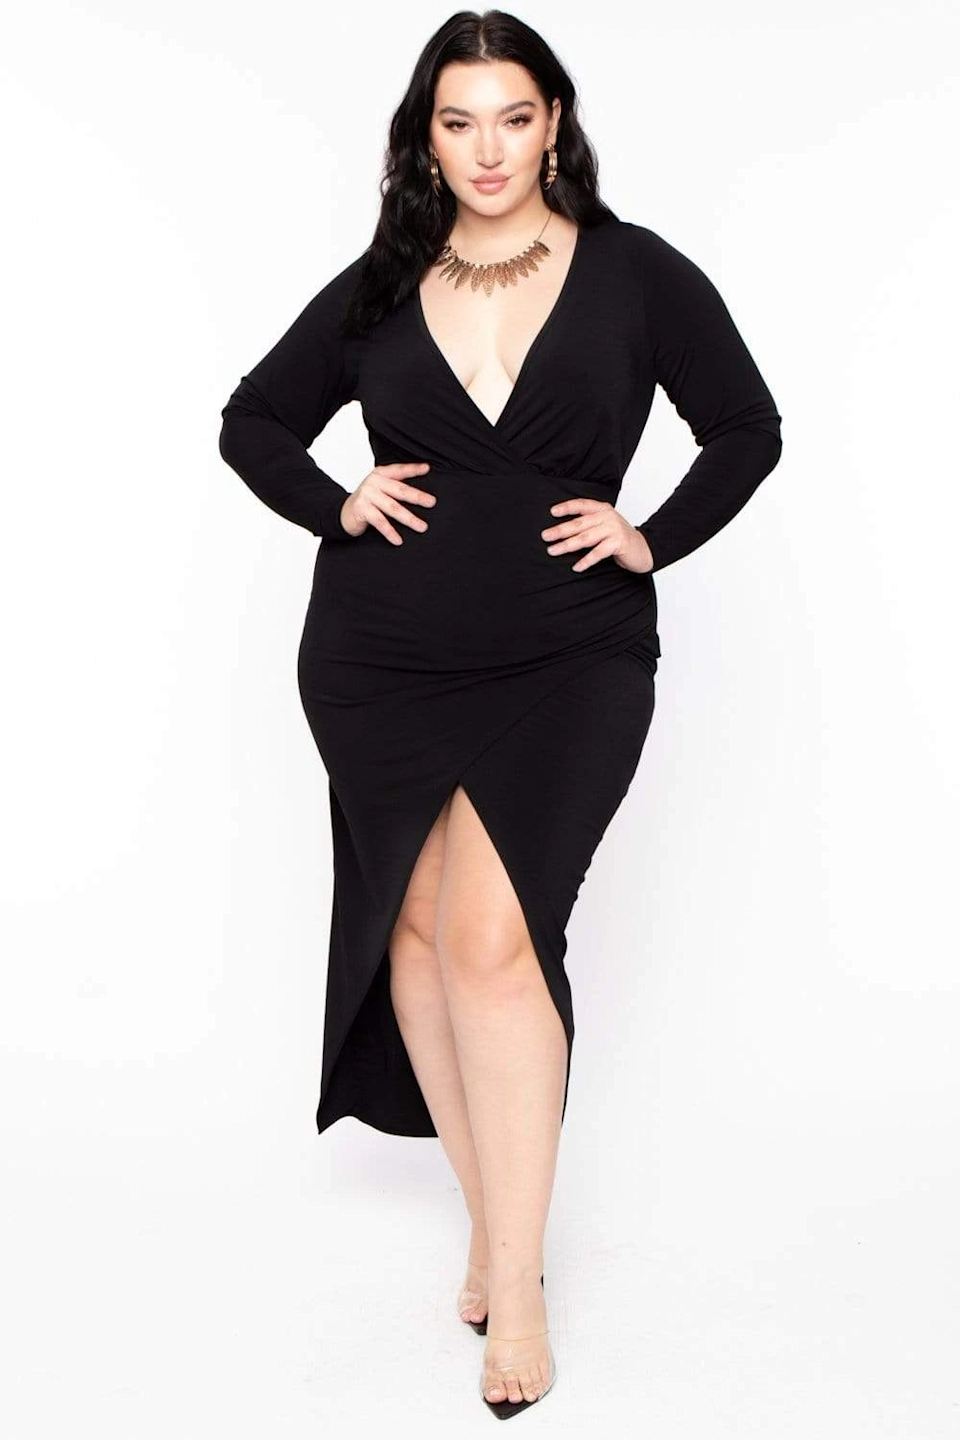 "<br><br><strong>Curvy Sense</strong> Athena Deep V Maxi Dress, $, available at <a href=""https://go.skimresources.com/?id=30283X879131&url=https%3A%2F%2Fcoedition.com%2Fcollections%2Fdresses%2Fproducts%2F4115867467873"" rel=""nofollow noopener"" target=""_blank"" data-ylk=""slk:CoEdition"" class=""link rapid-noclick-resp"">CoEdition</a>"